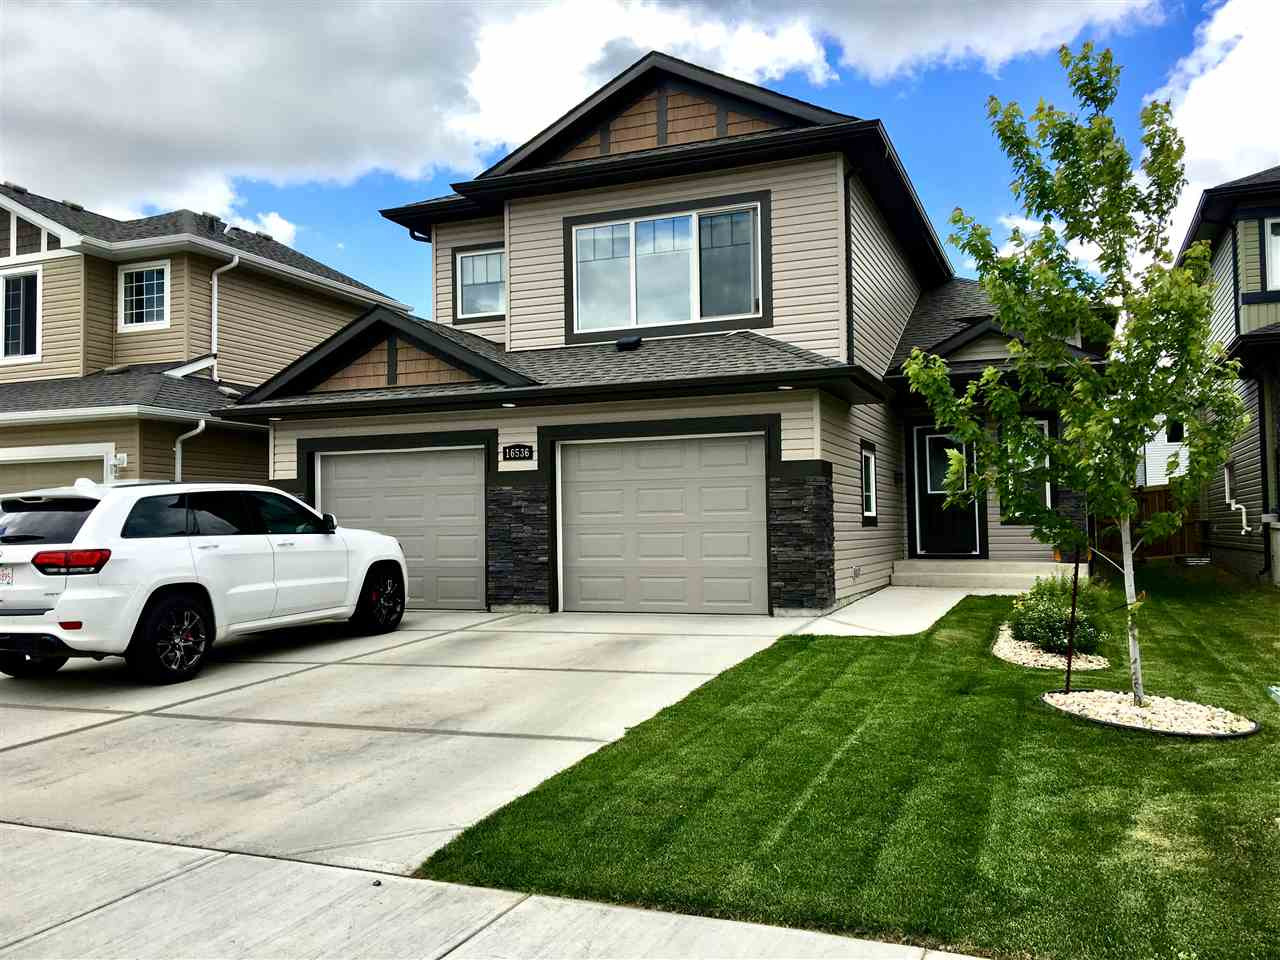 16536 131 St, 5 bed, 3 bath, at $549,900